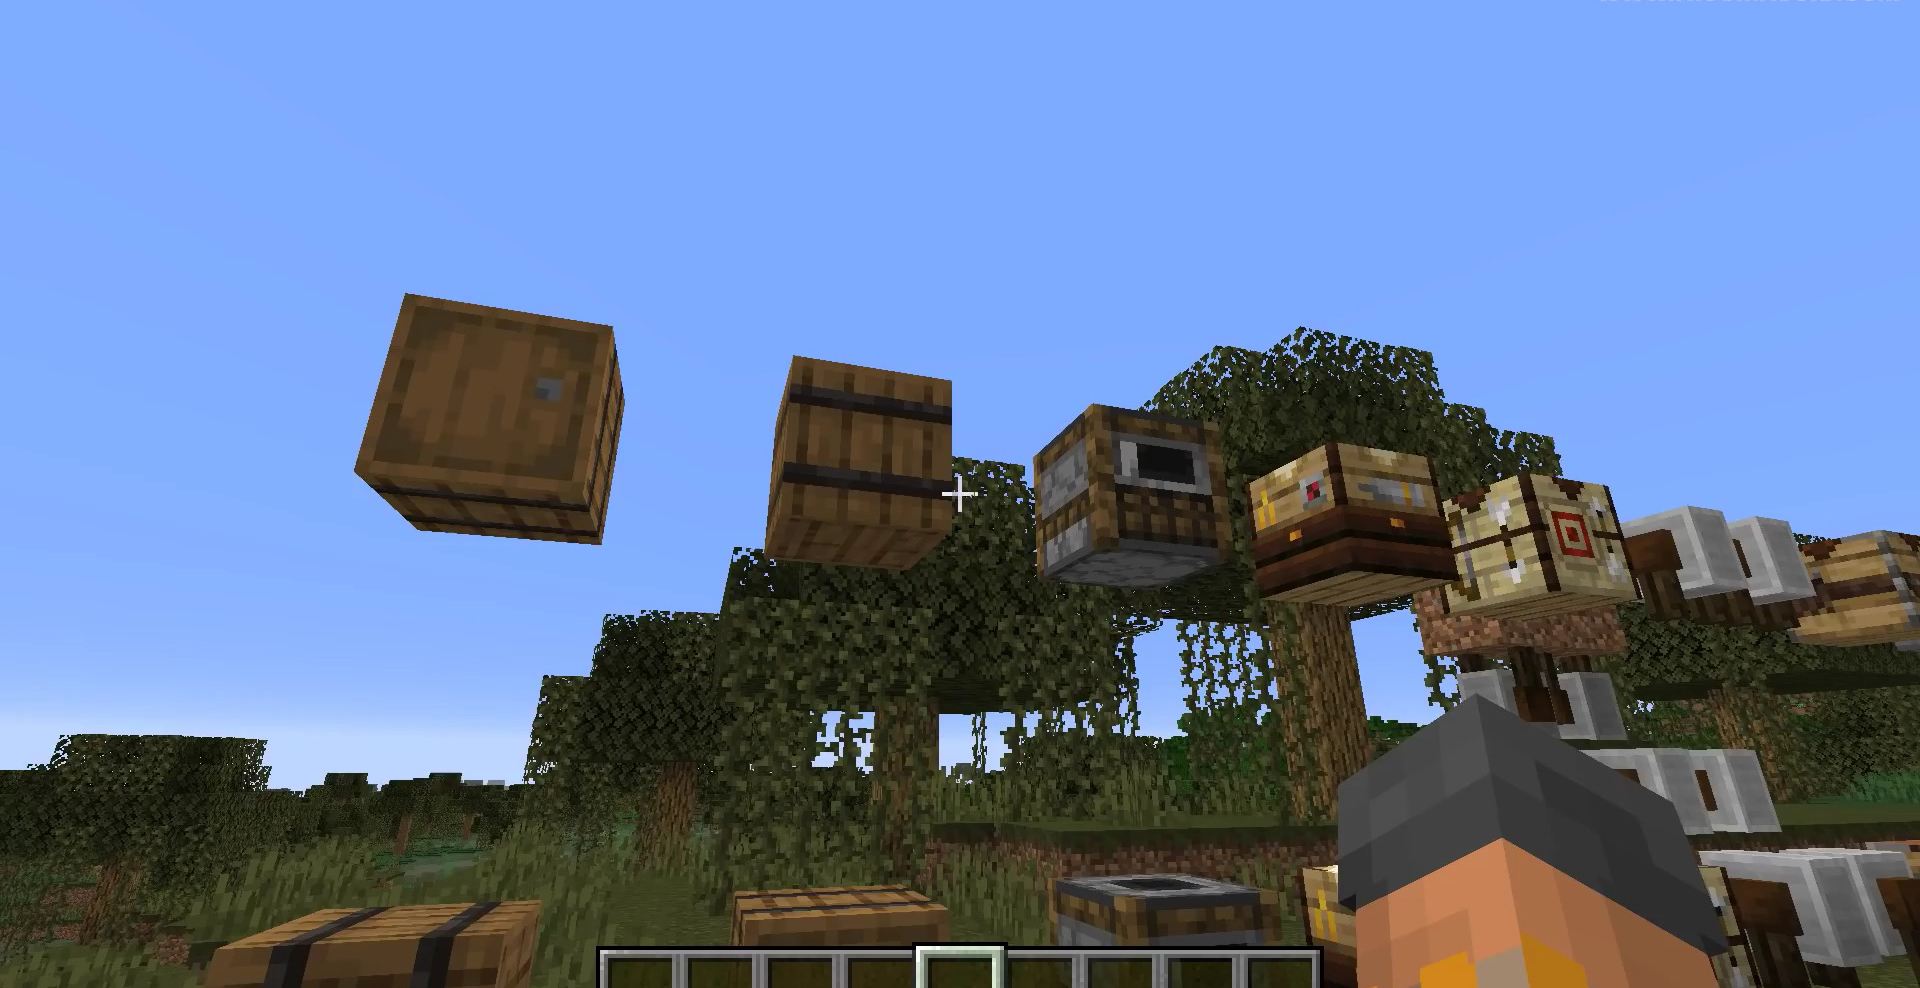 Minecraft 1.14 Snapshot 18w44a Screenshots 2